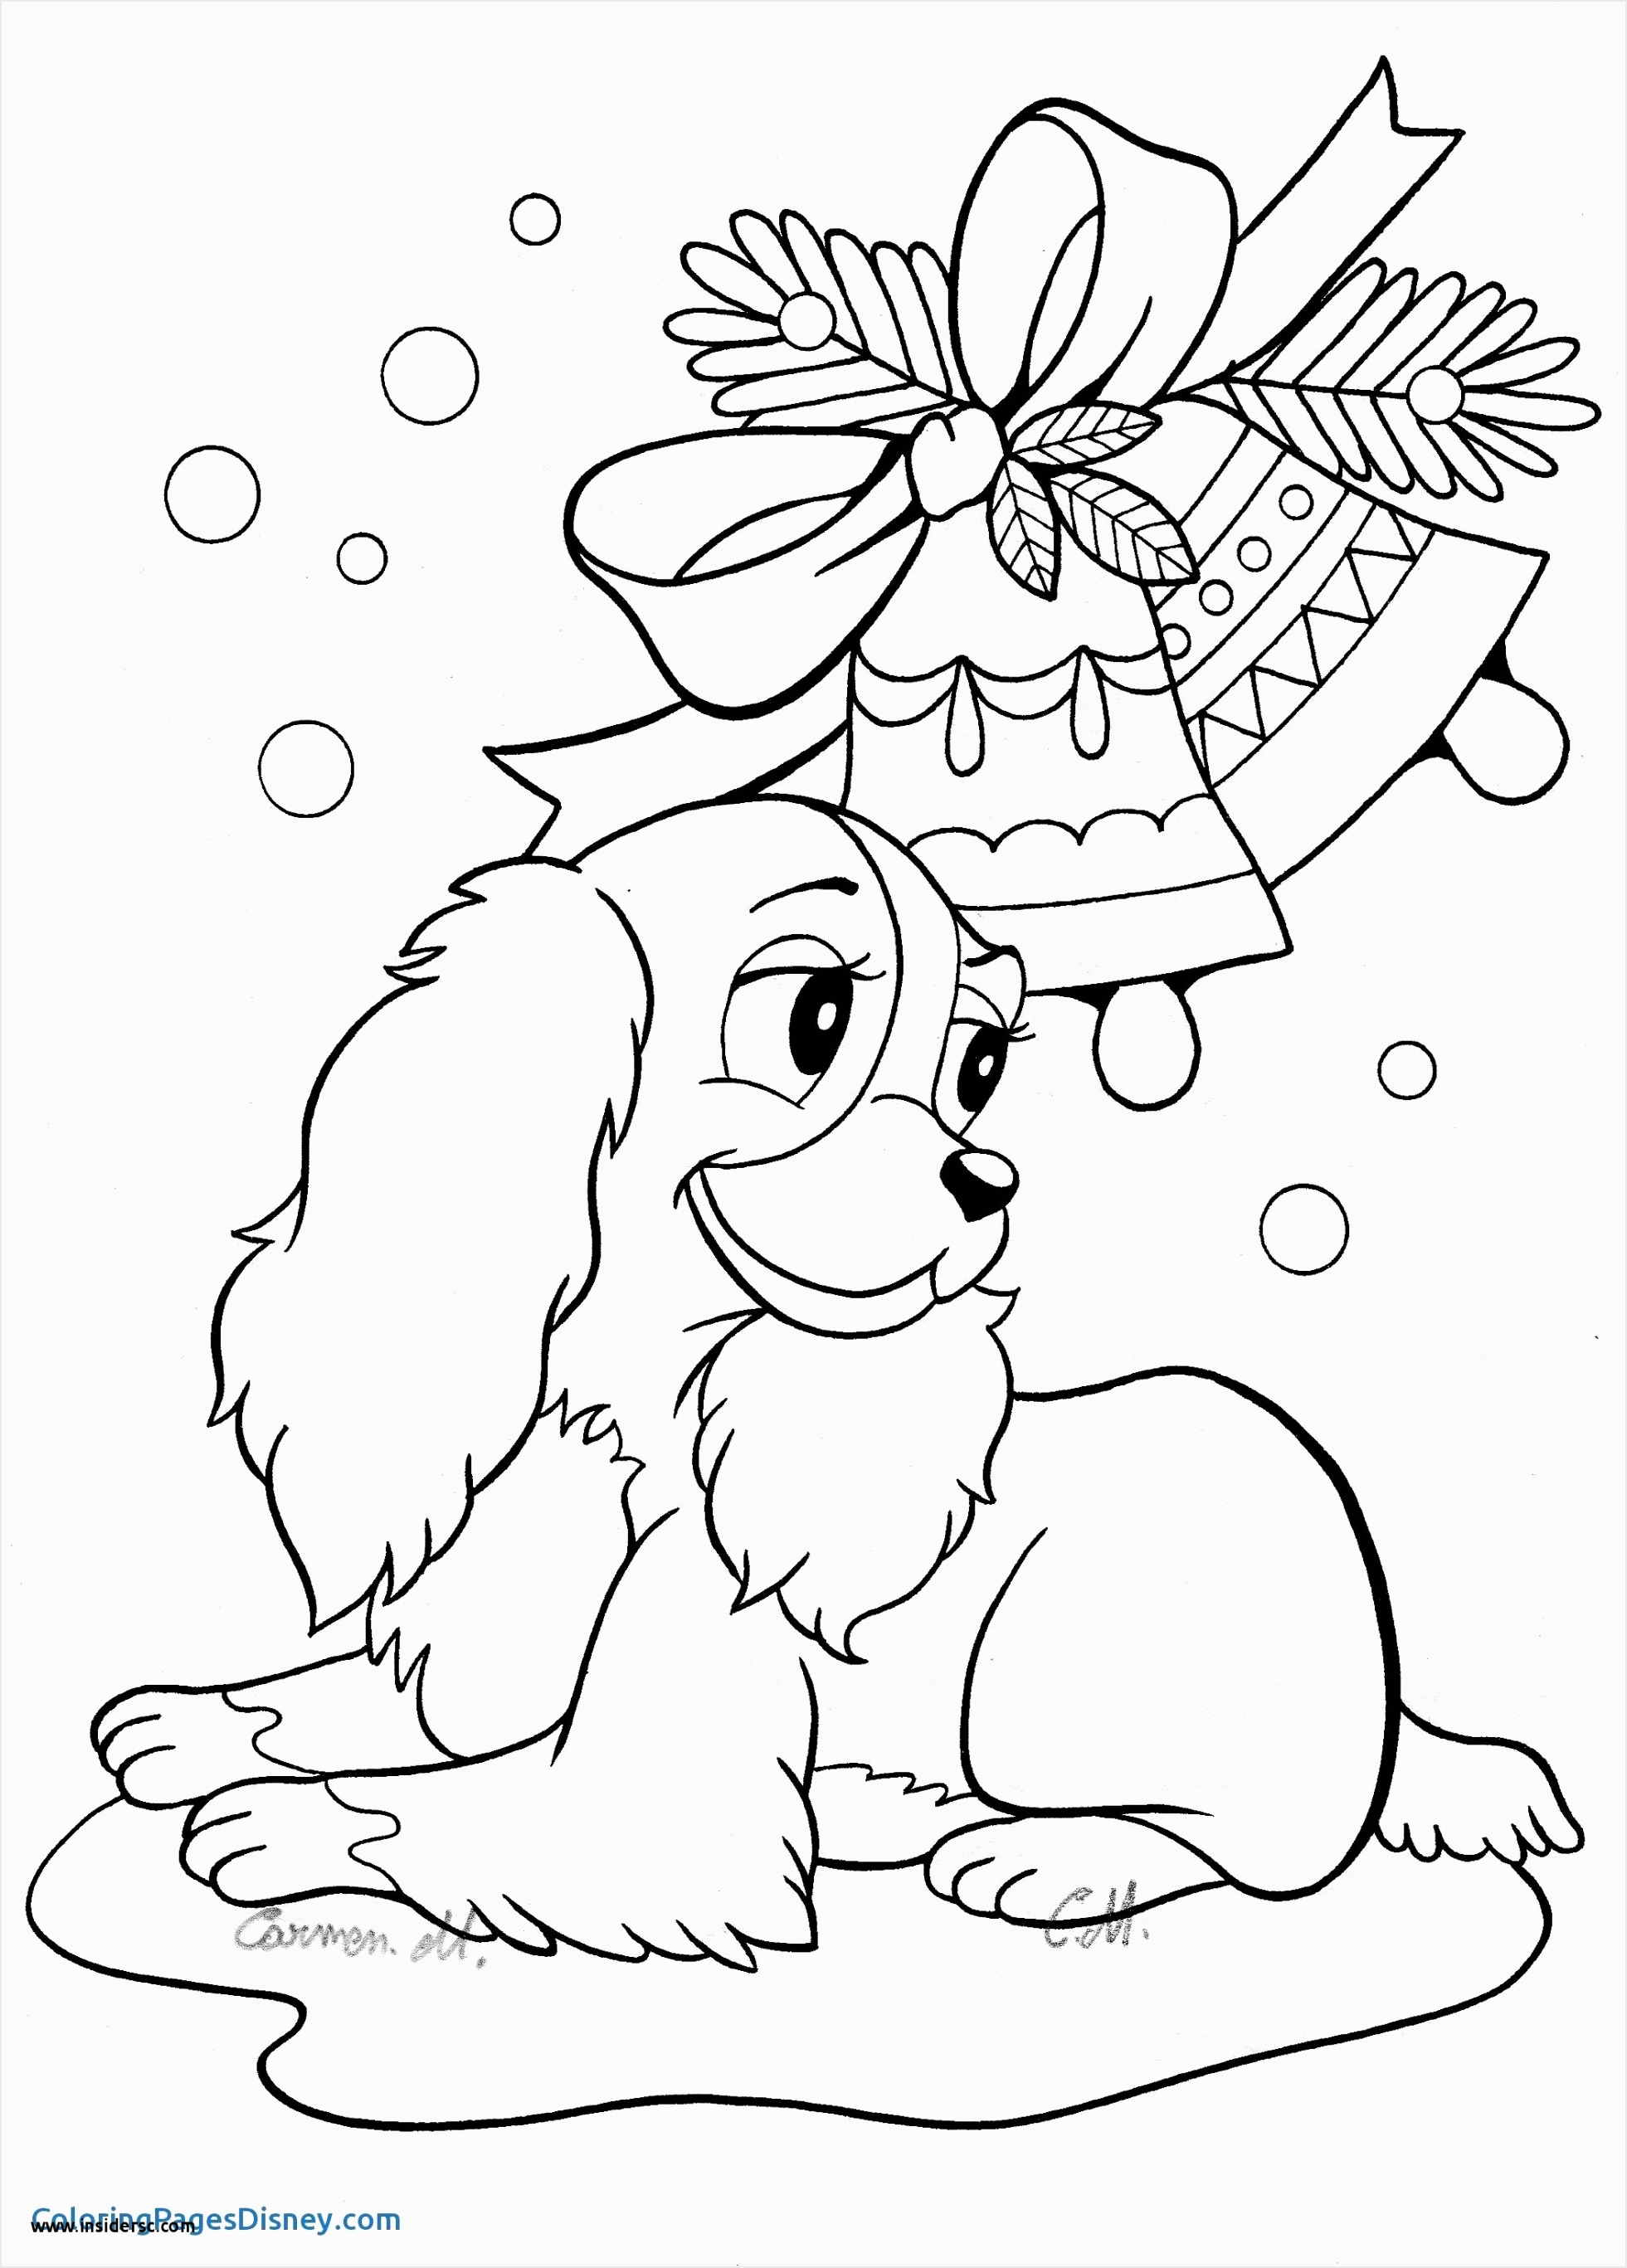 kitty coloring pages beautiful hello neighbor coloring page 2019 of kitty coloring pages tjiul